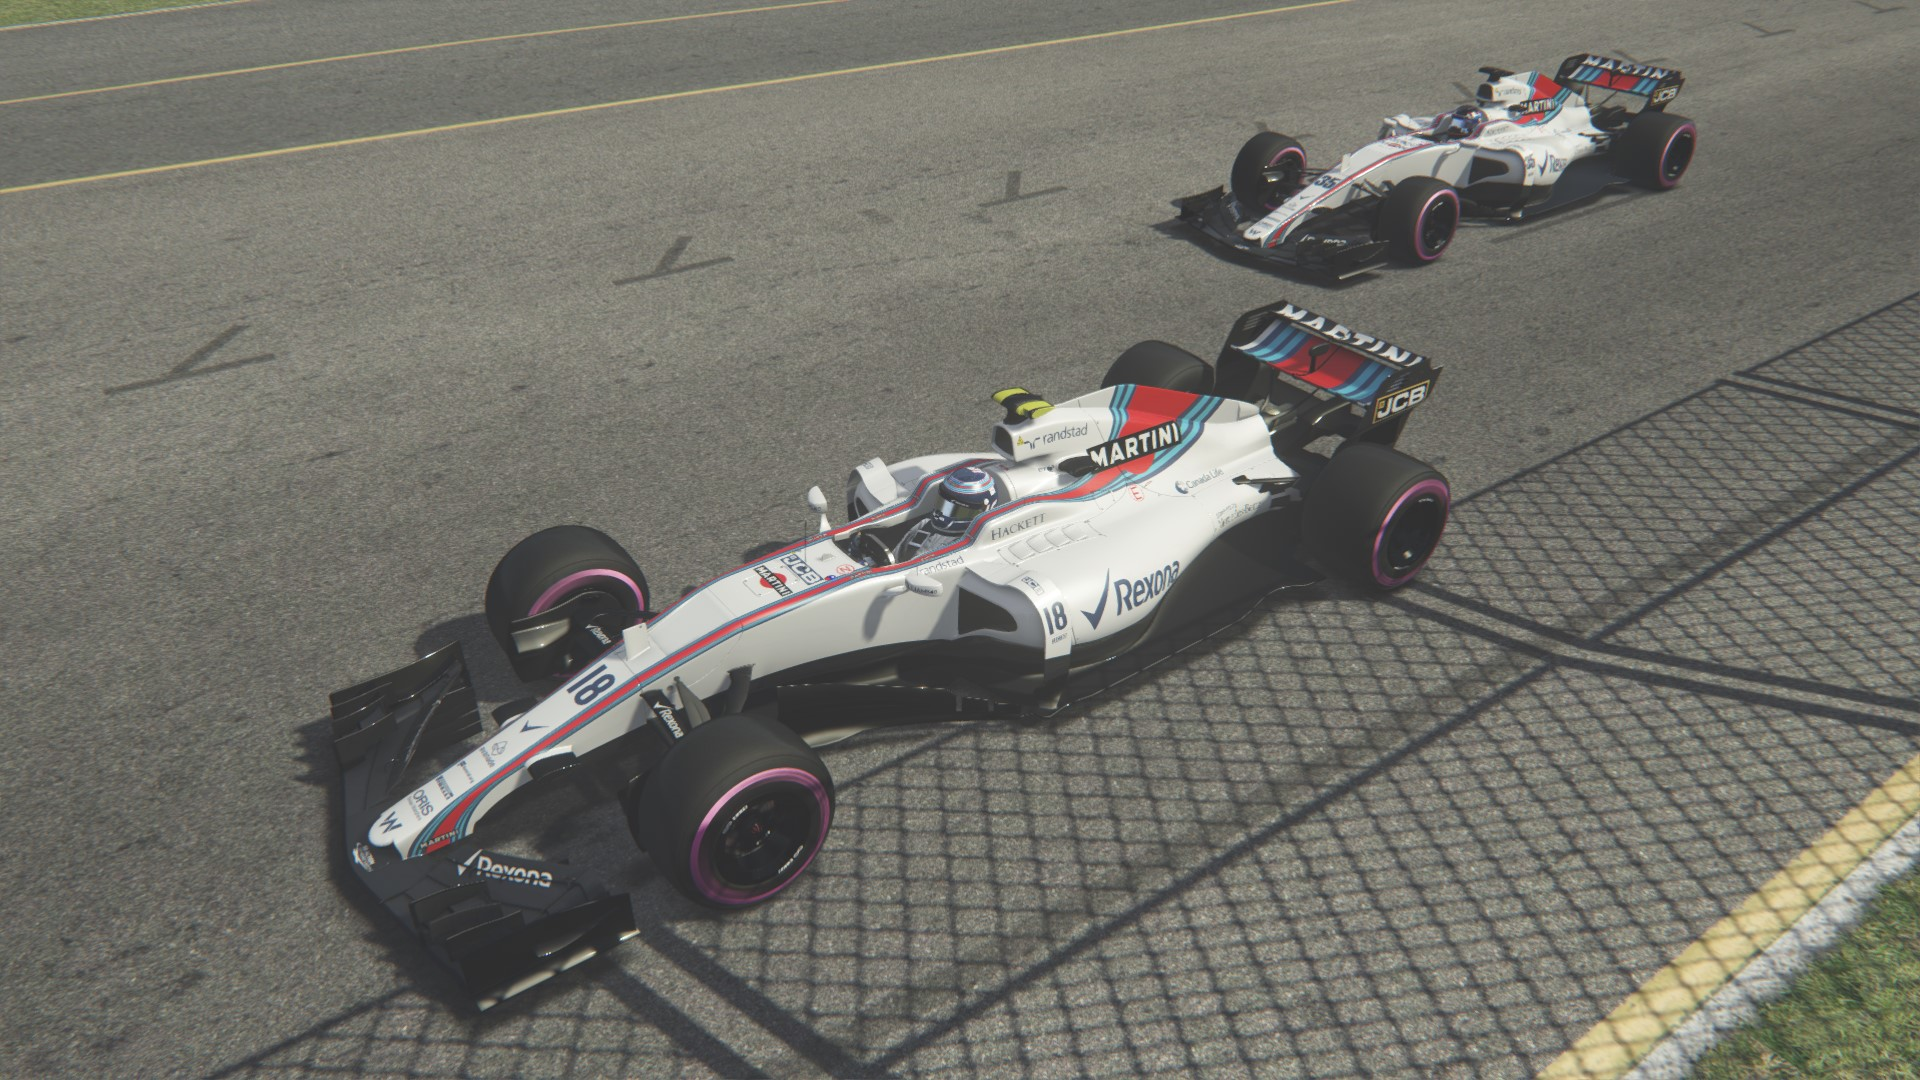 Screenshot_rss_formula_hybrid_2017_albert-park_4-3-118-9-43-5.jpg